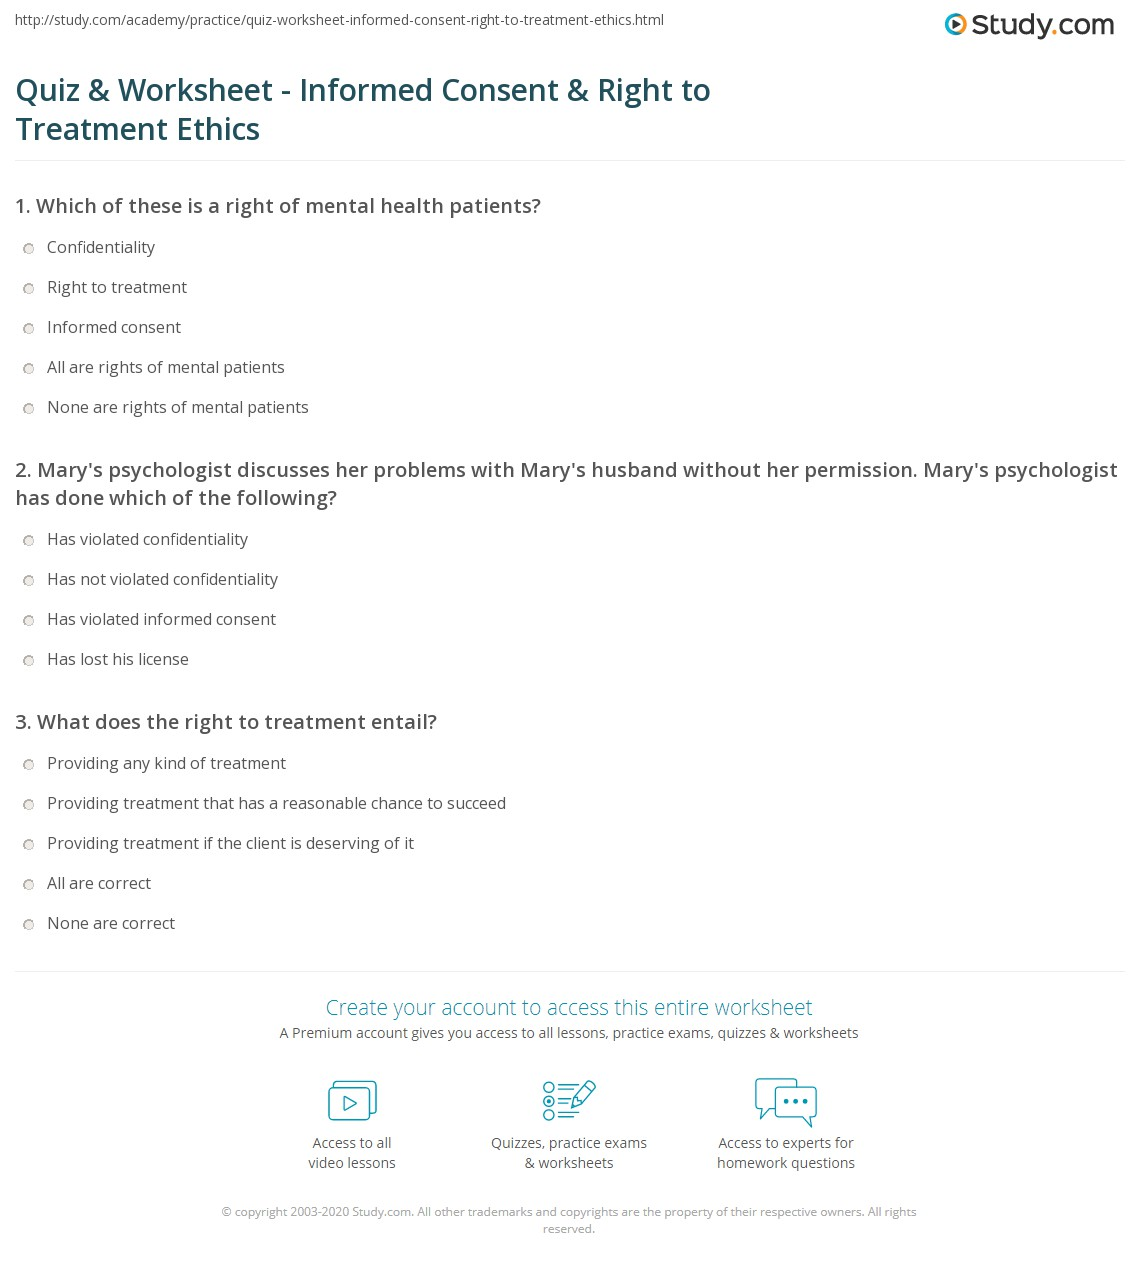 Quiz & Worksheet - Informed Consent & Right to Treatment Ethics